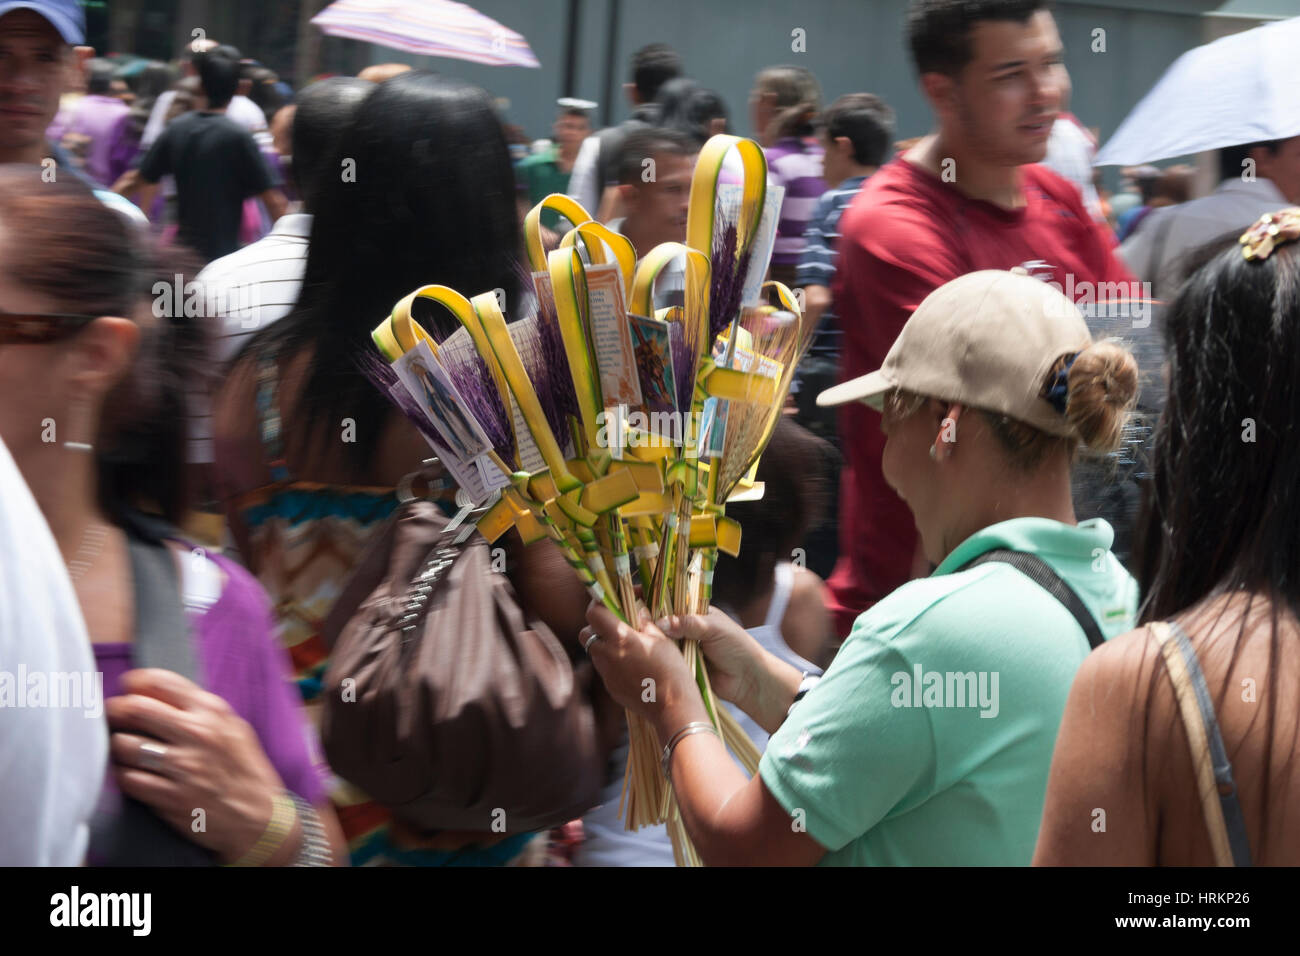 Caracas, Dtto Capital / Venezuela - 04/04/2012. Street sellers in downtown Caracas during Easter. Stock Photo